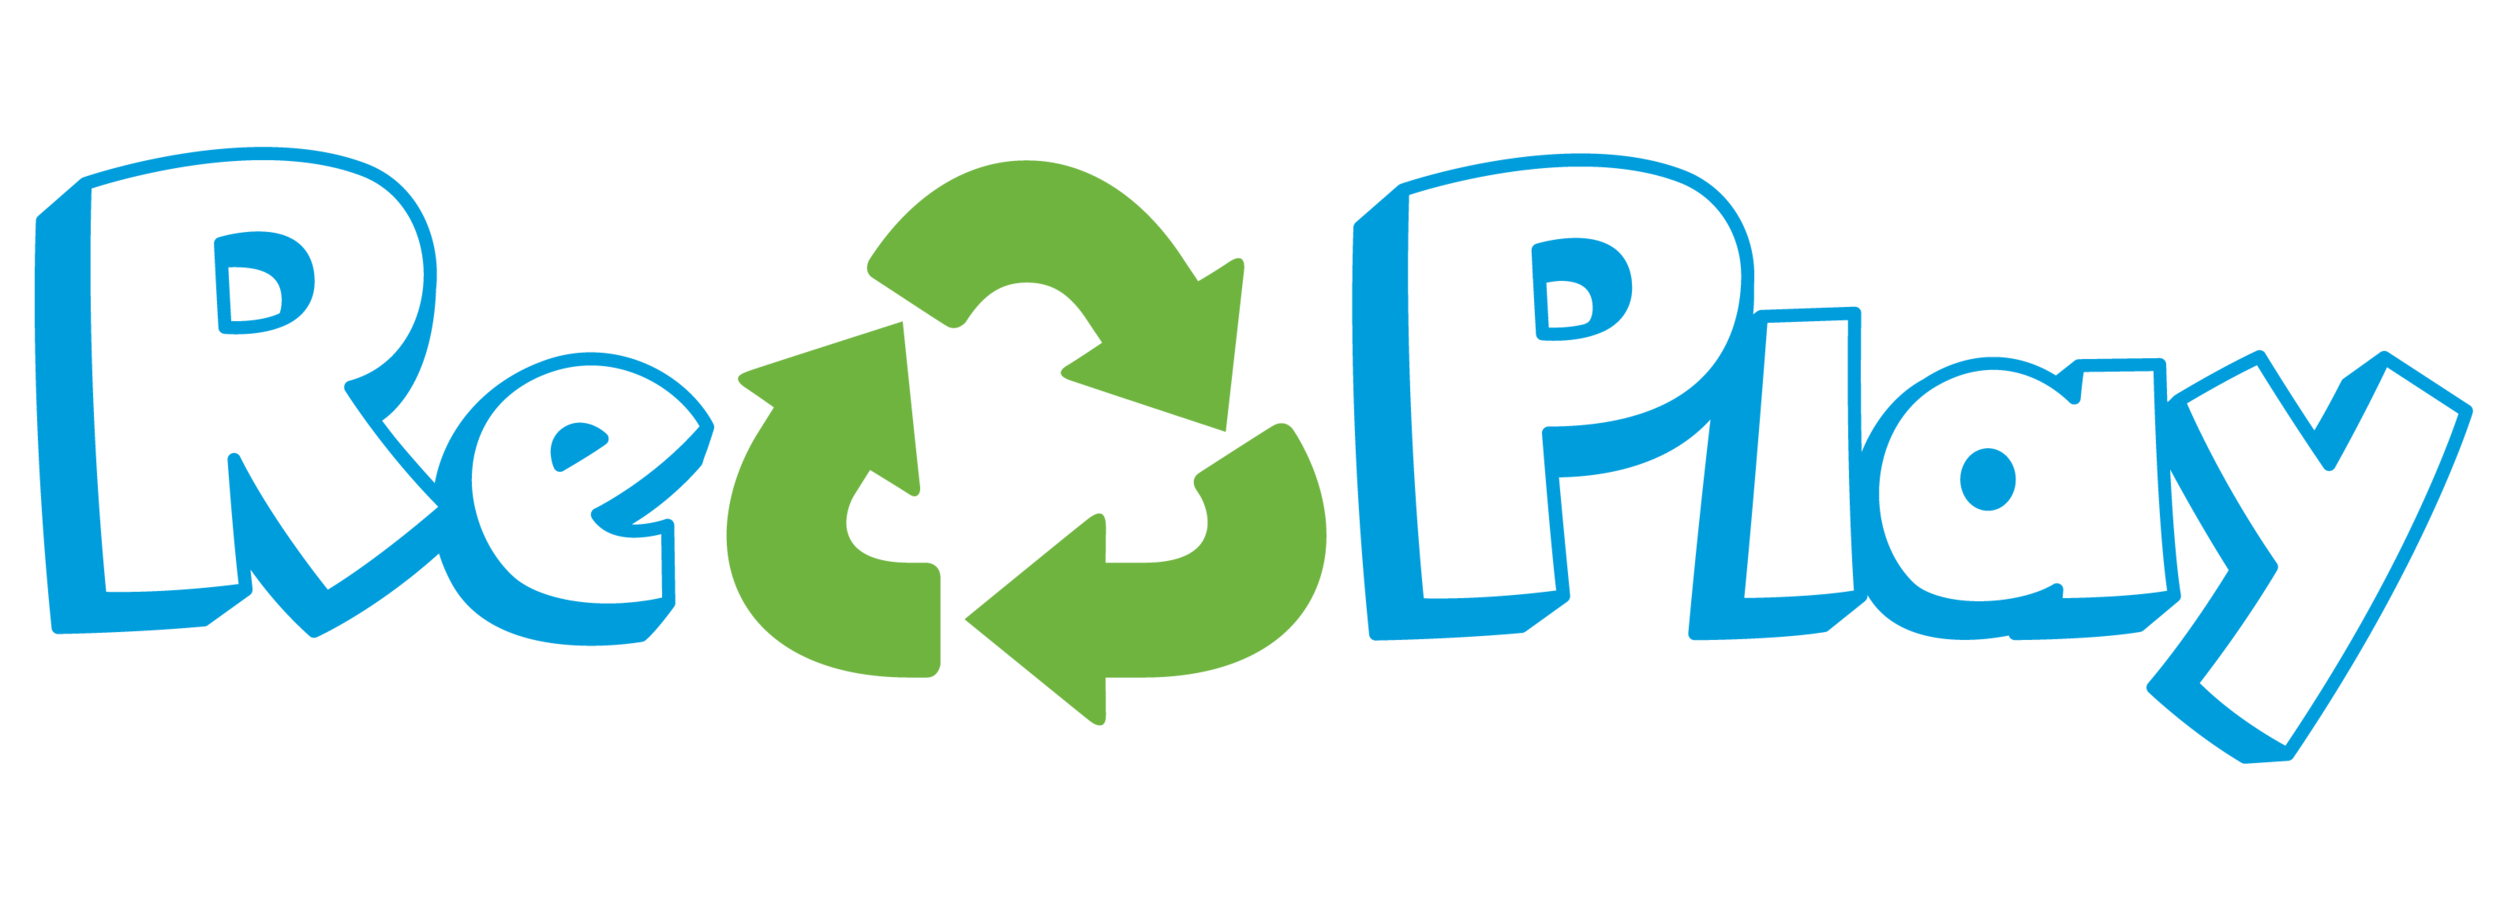 Re-Play - Recycling plastic into beautiful piecesRe-Play plates, bowls, utensils, and cups are made out of recycled HDPE plastic and are high quality, colorful and well-made.